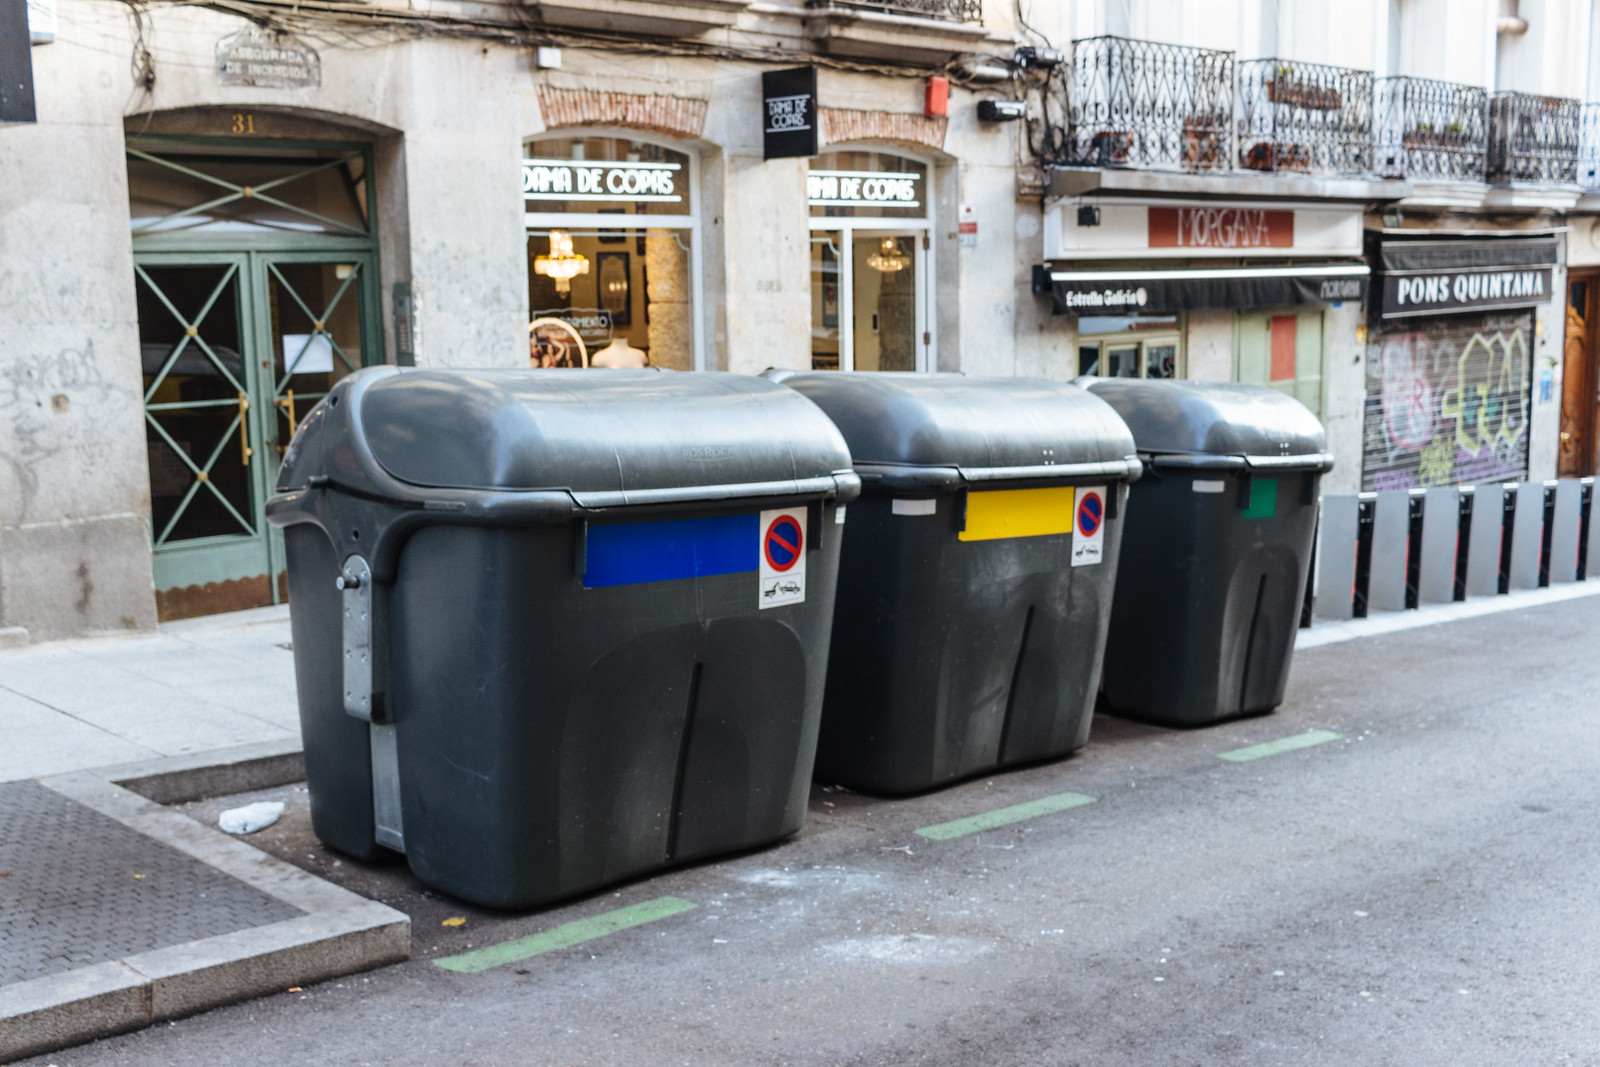 Paper, plastic, and trash bins in Madrid, Spain